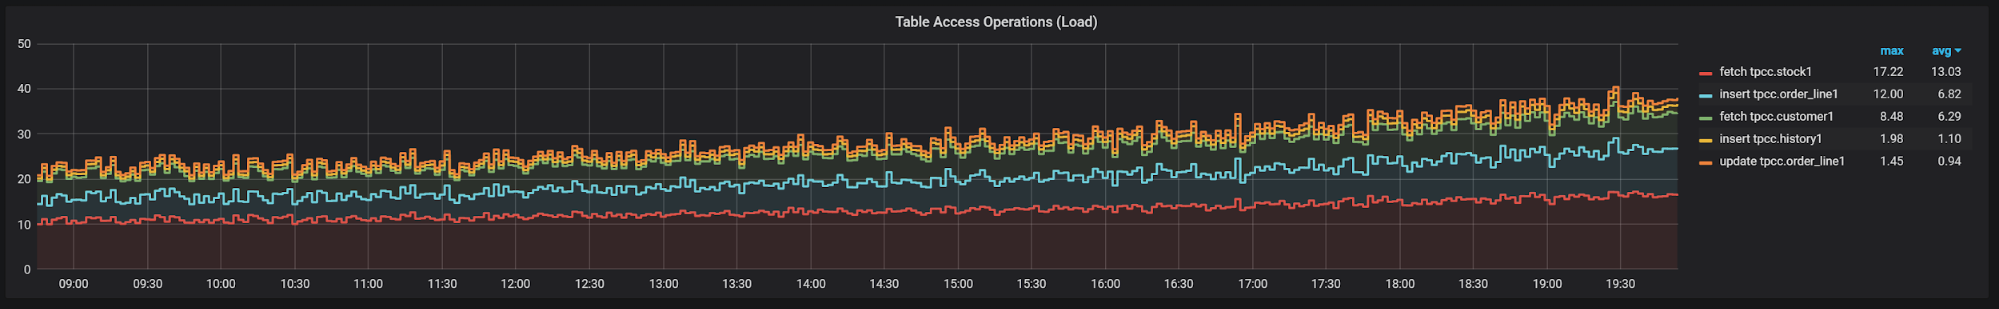 table operations dashboard